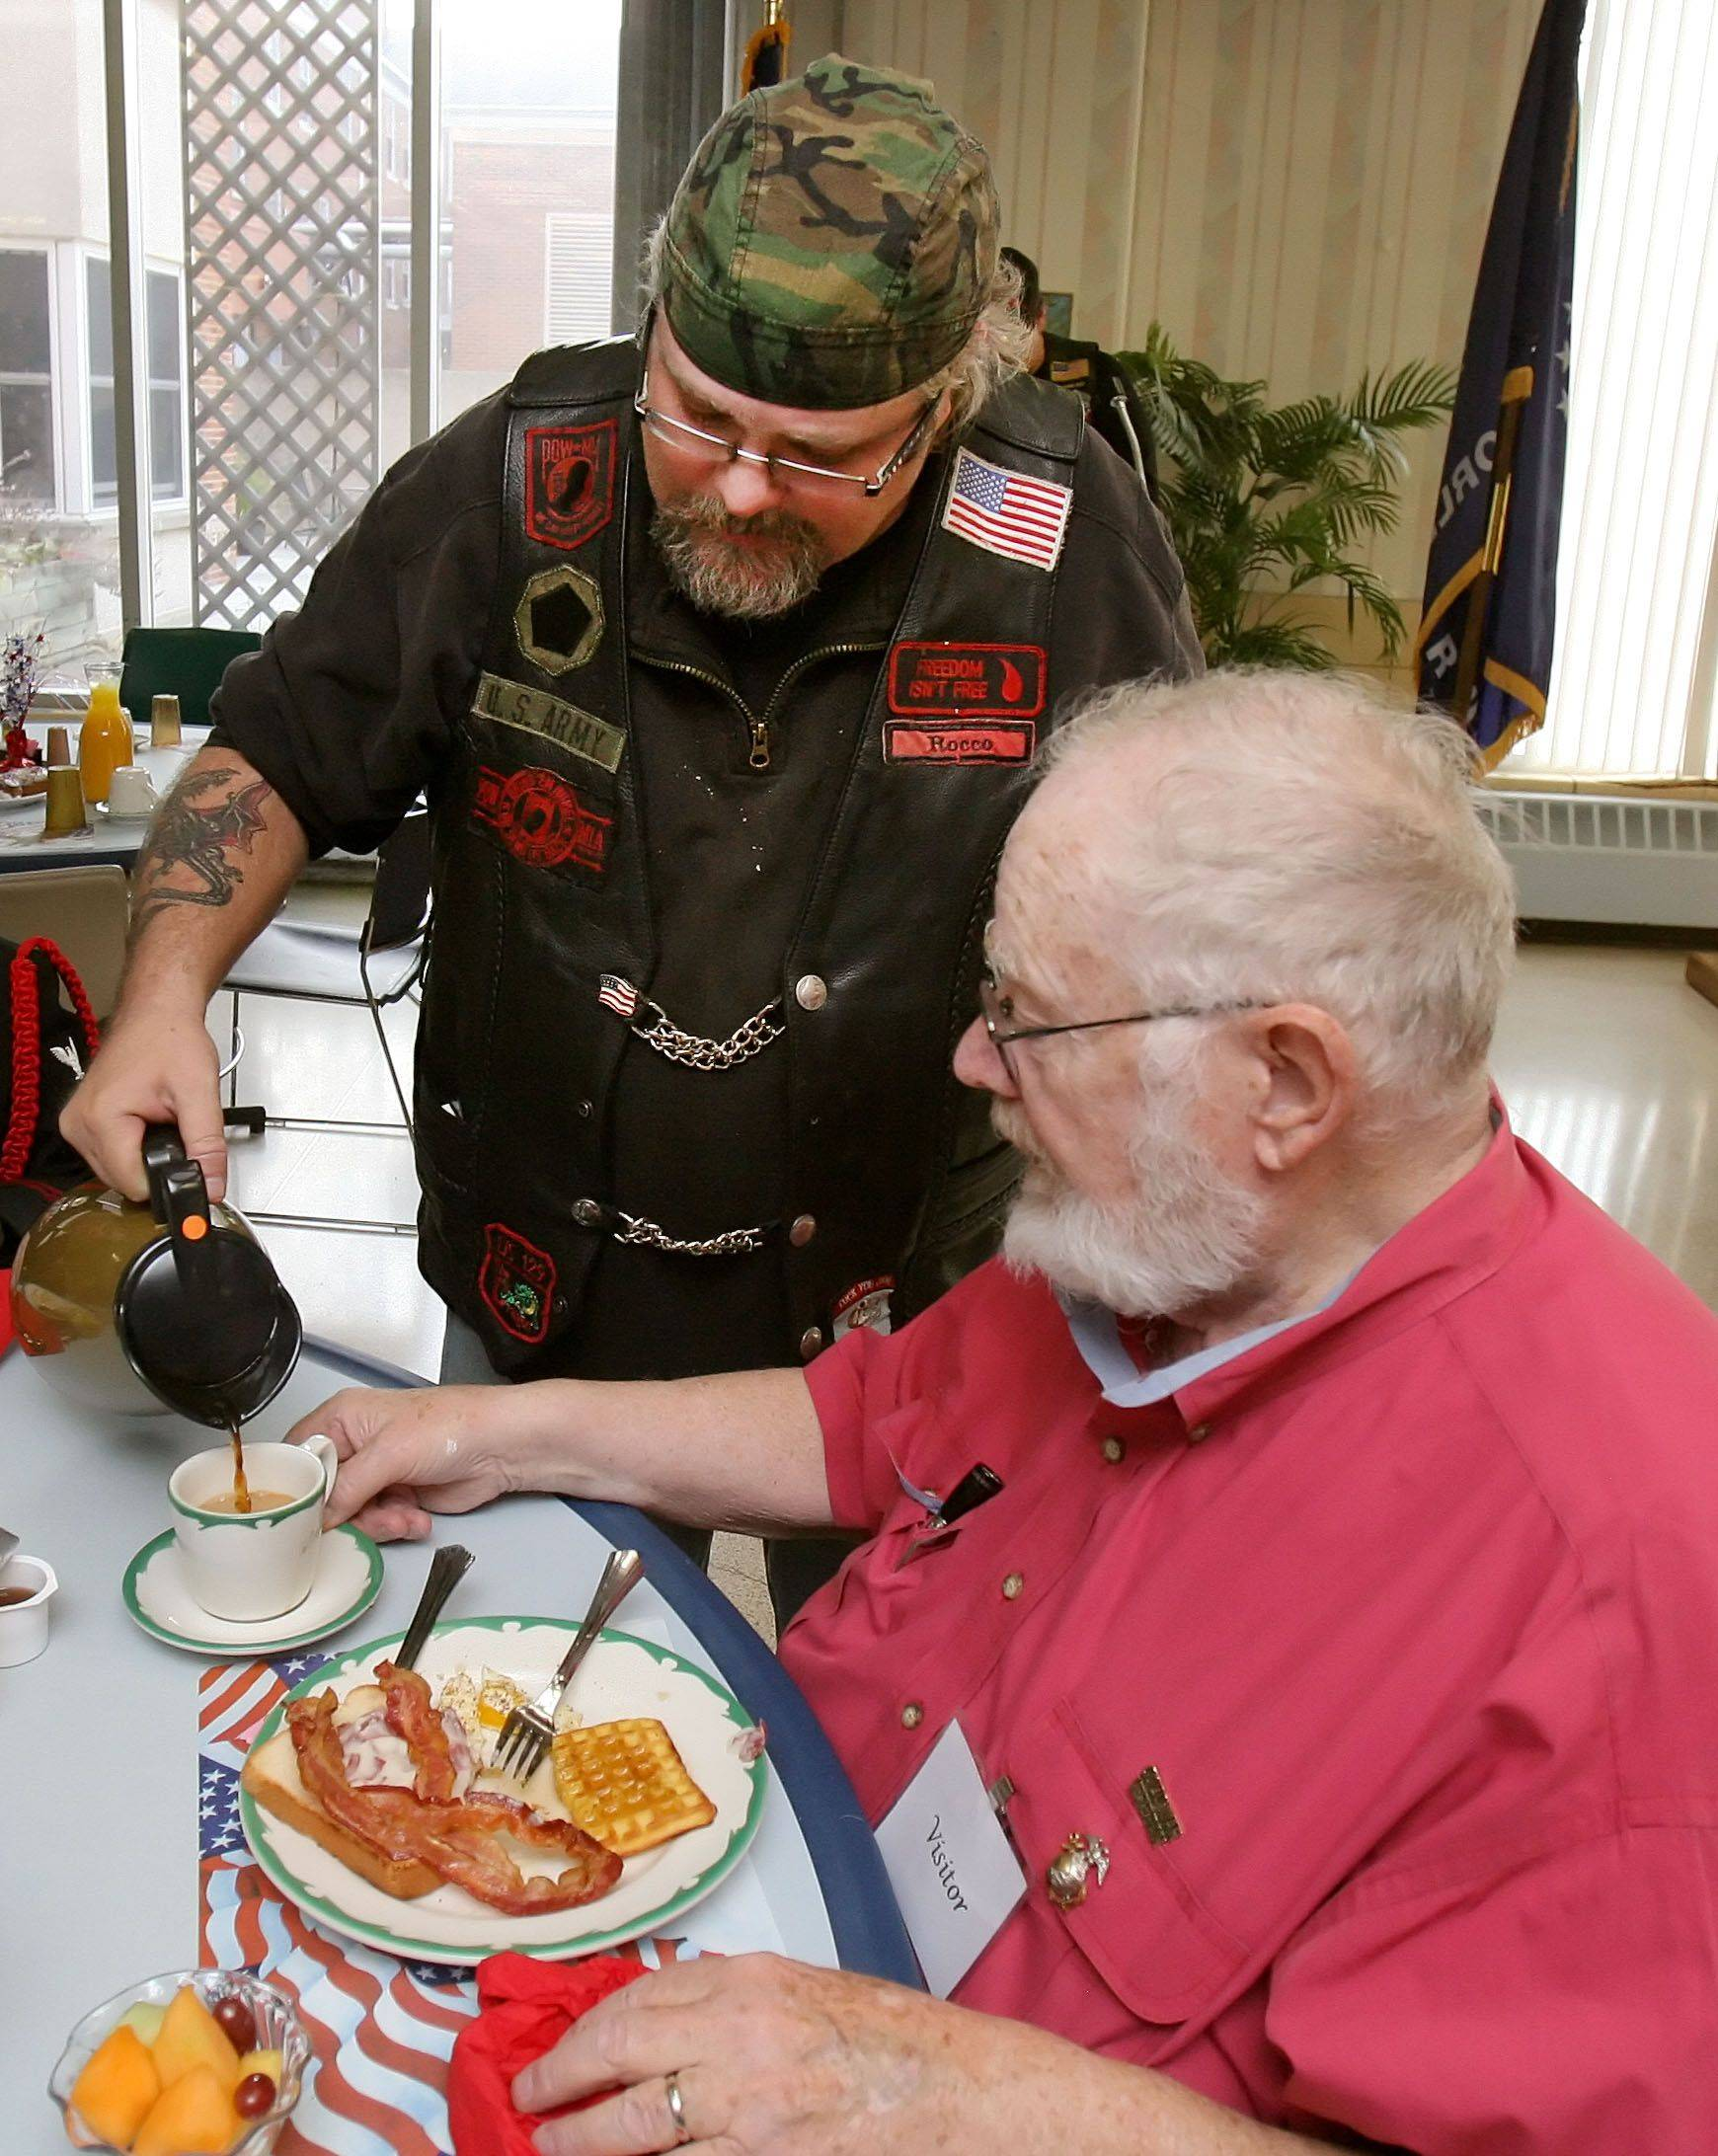 Rocco Jorgensen of the Second Brigade Motorcycle Club and a resident of Lake Villa, pours coffee for veteran Peter Phillips of Libertyville at the Winchester House in Libertyville Thursday. The Second Brigade Motorcycle Club sponsored a breakfast for veterans at Winchester House. Phillip's wife is a resident at Winchester House.